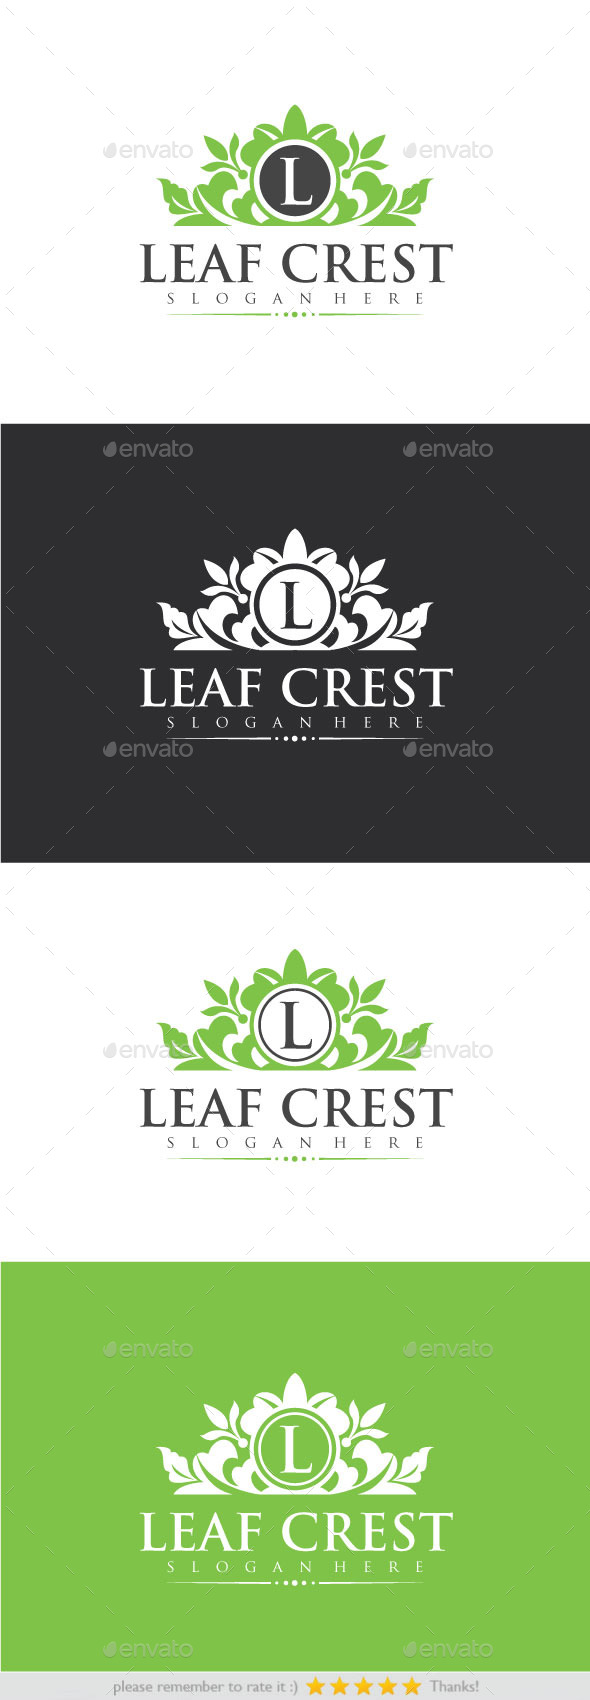 Leaf Crest - Crests Logo Templates